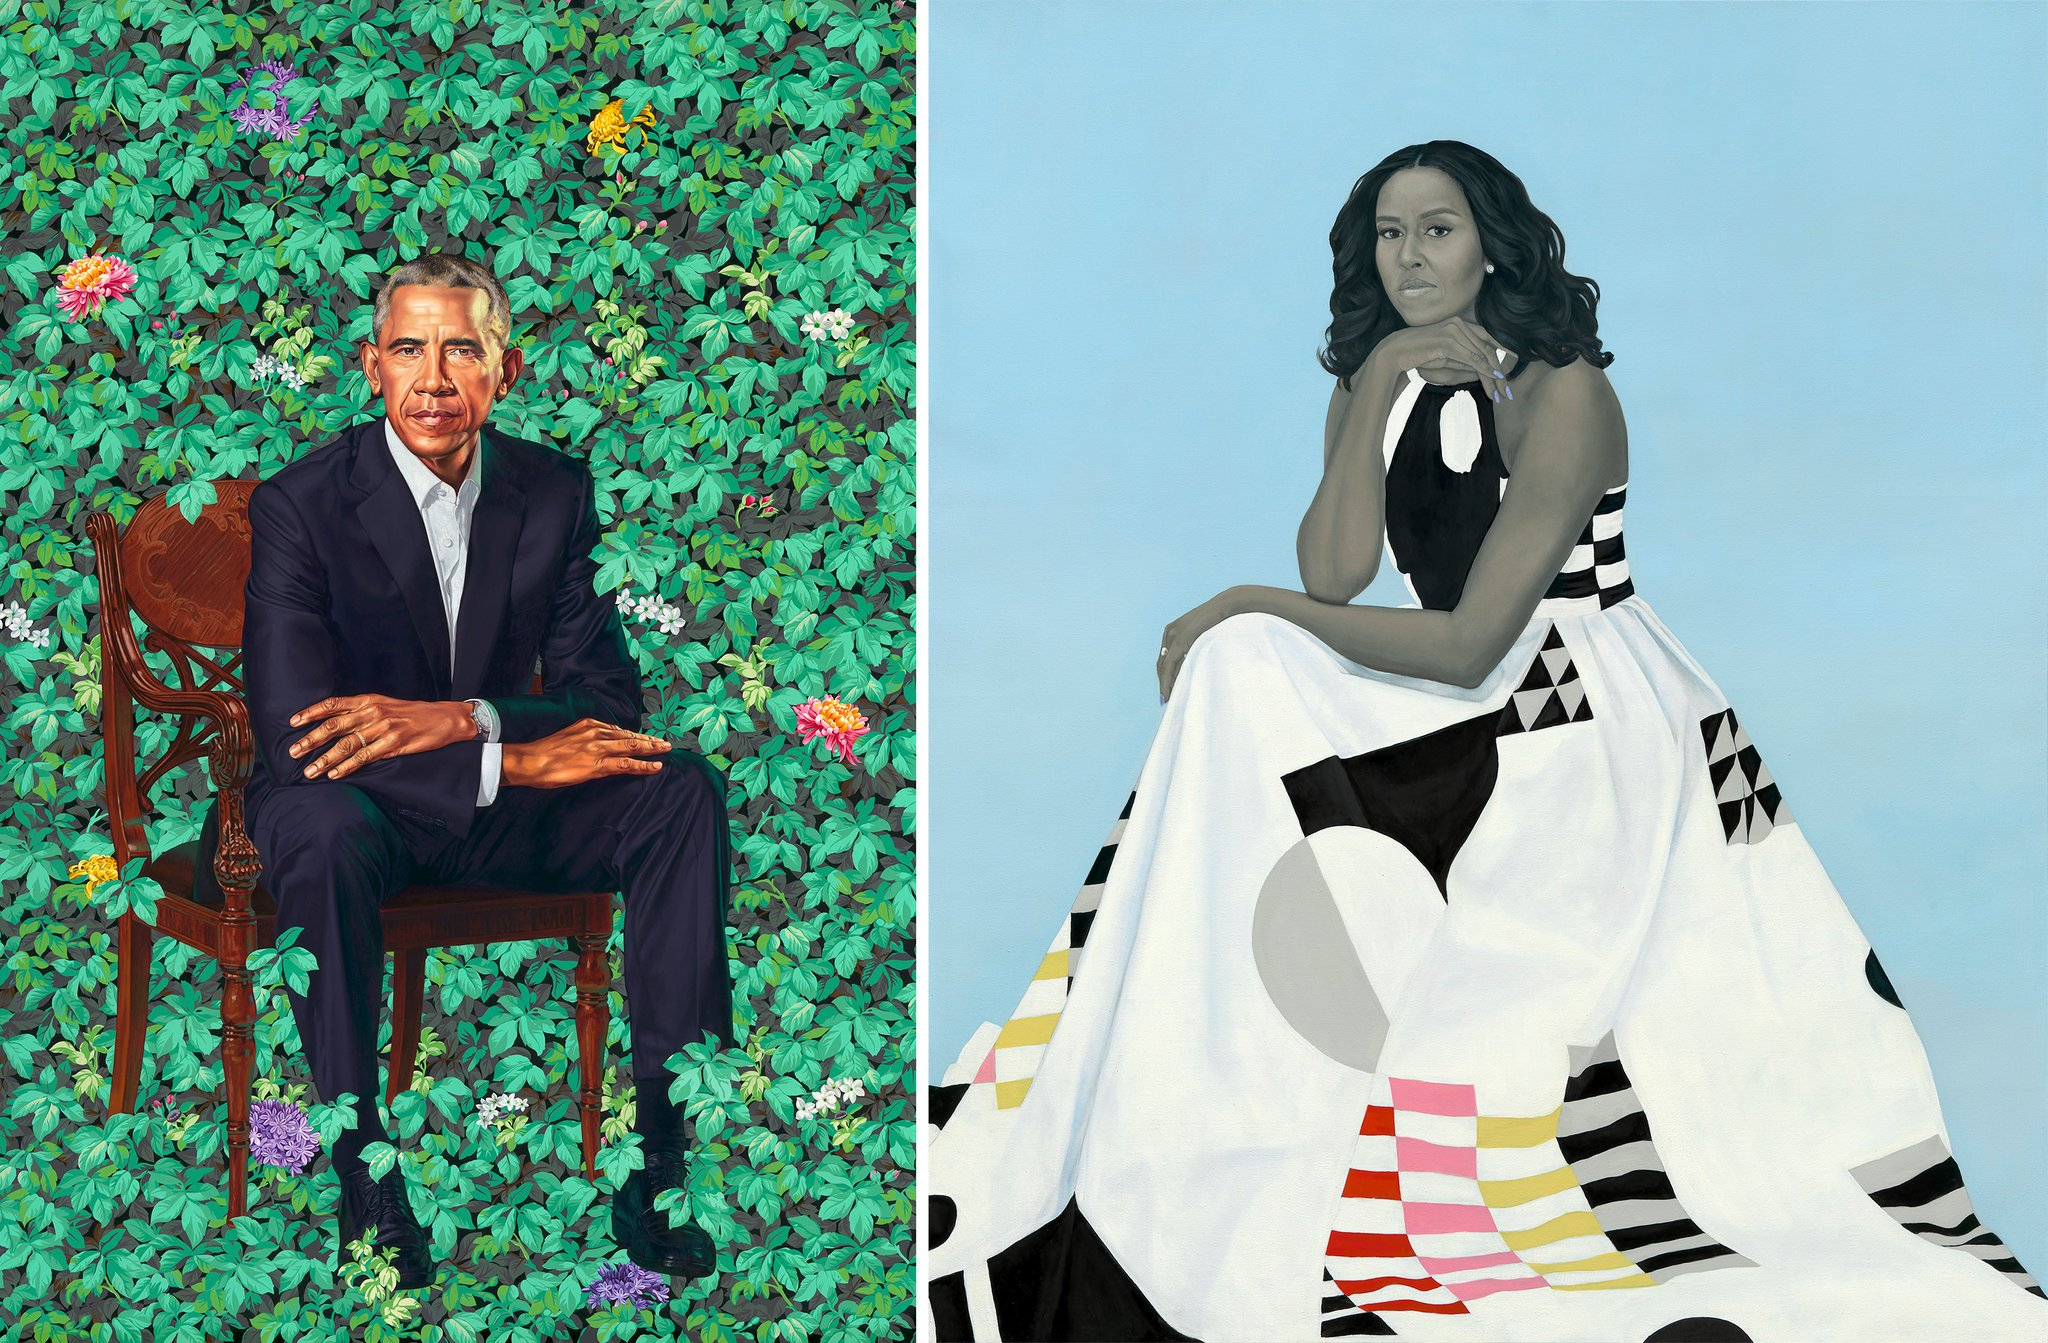 The Obama Official Portraits: When art imitates life and truth is stranger than fiction